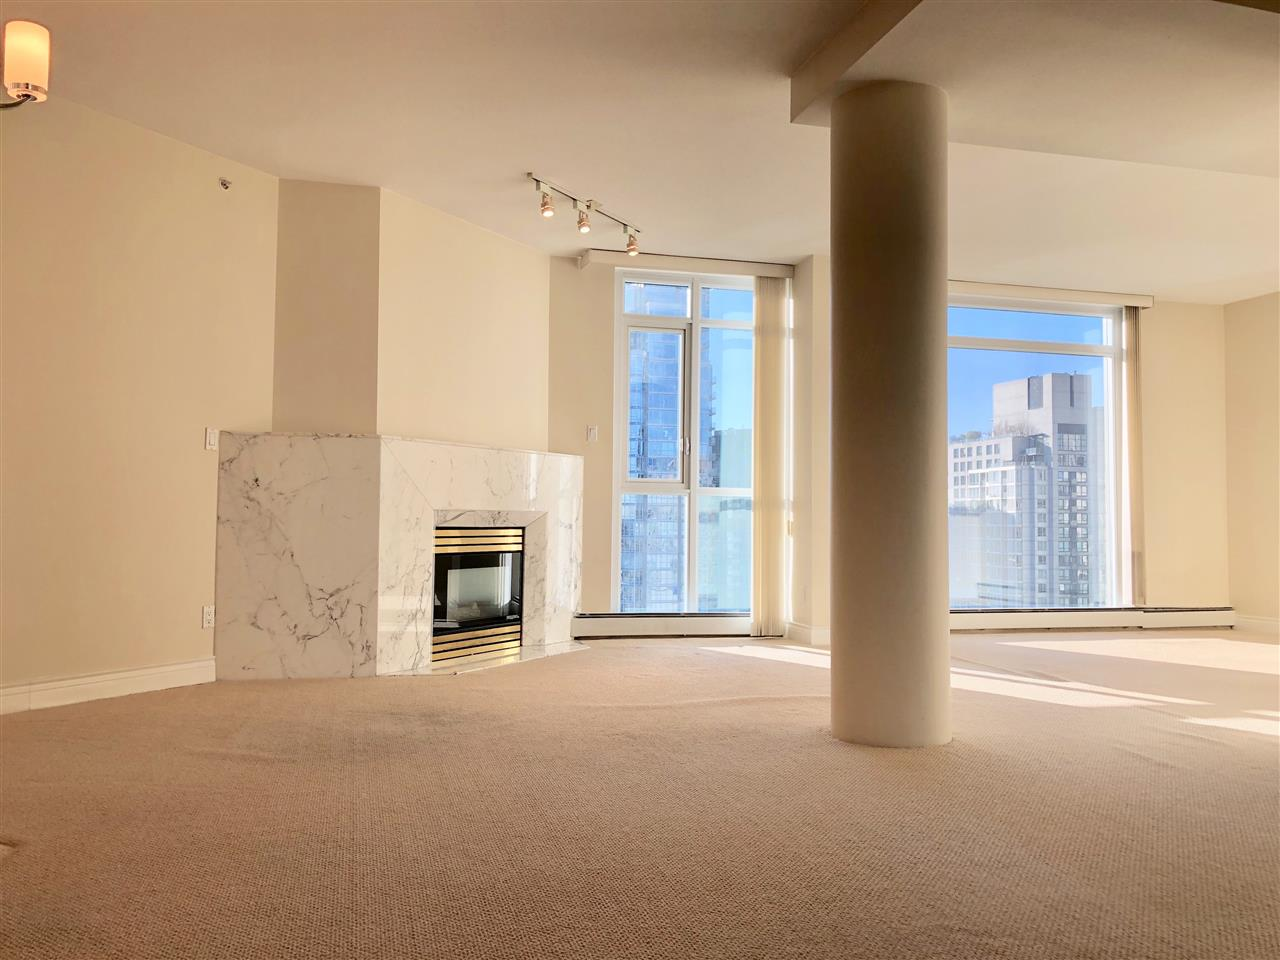 3001 388 DRAKE STREET - Yaletown Apartment/Condo for sale, 3 Bedrooms (R2422644) - #5